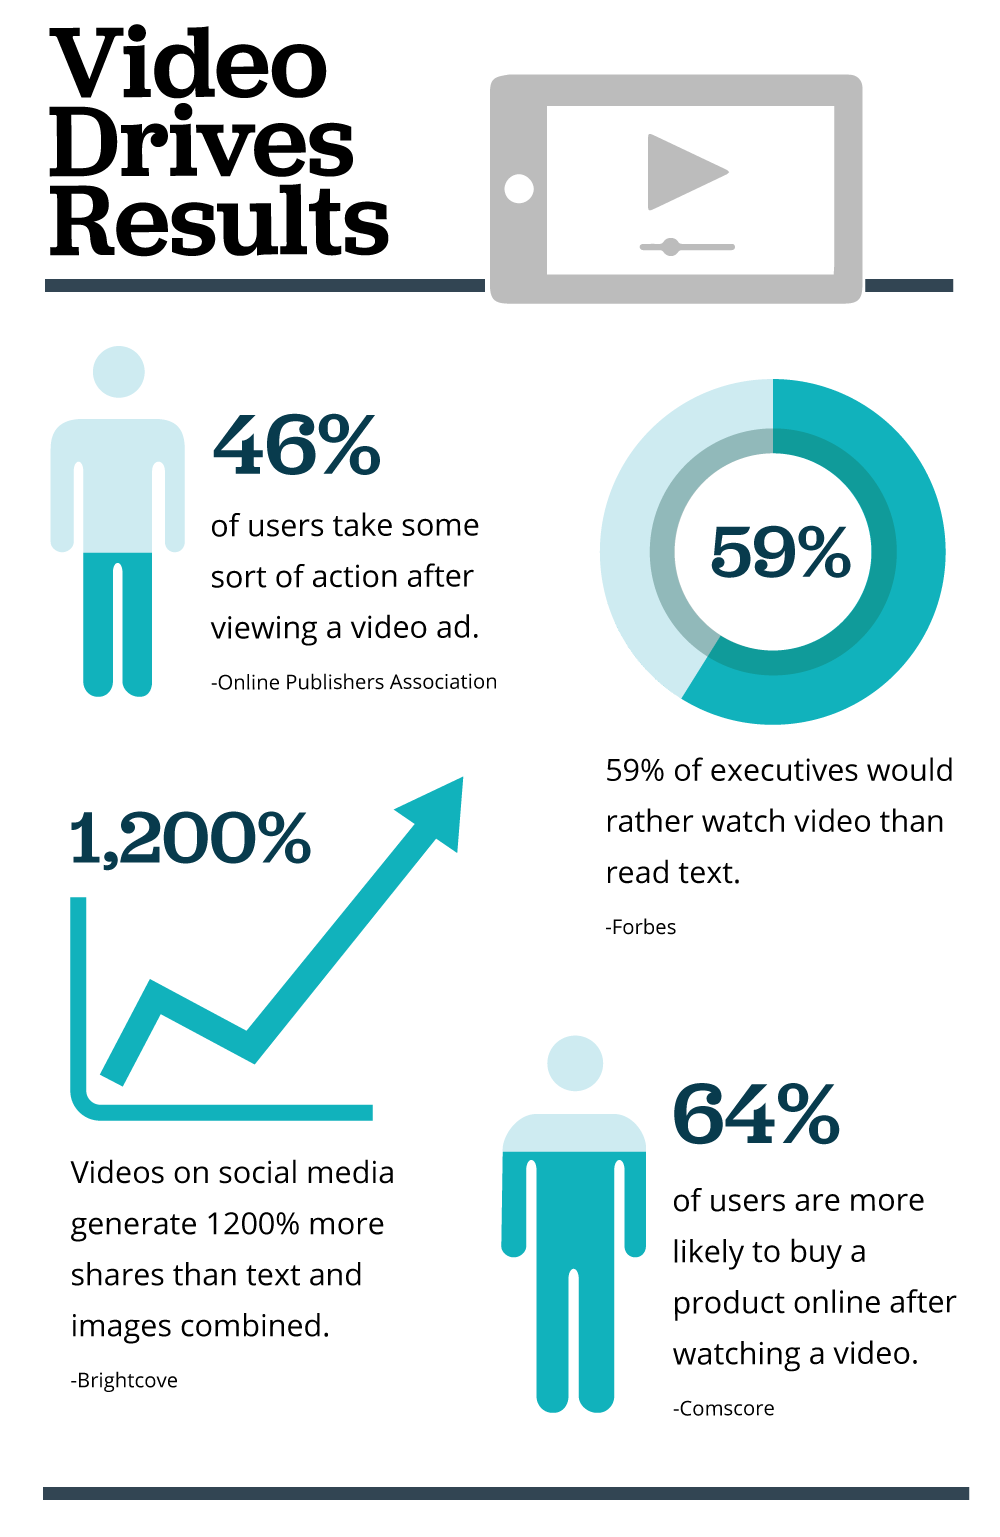 Video Drives Results - Infographic